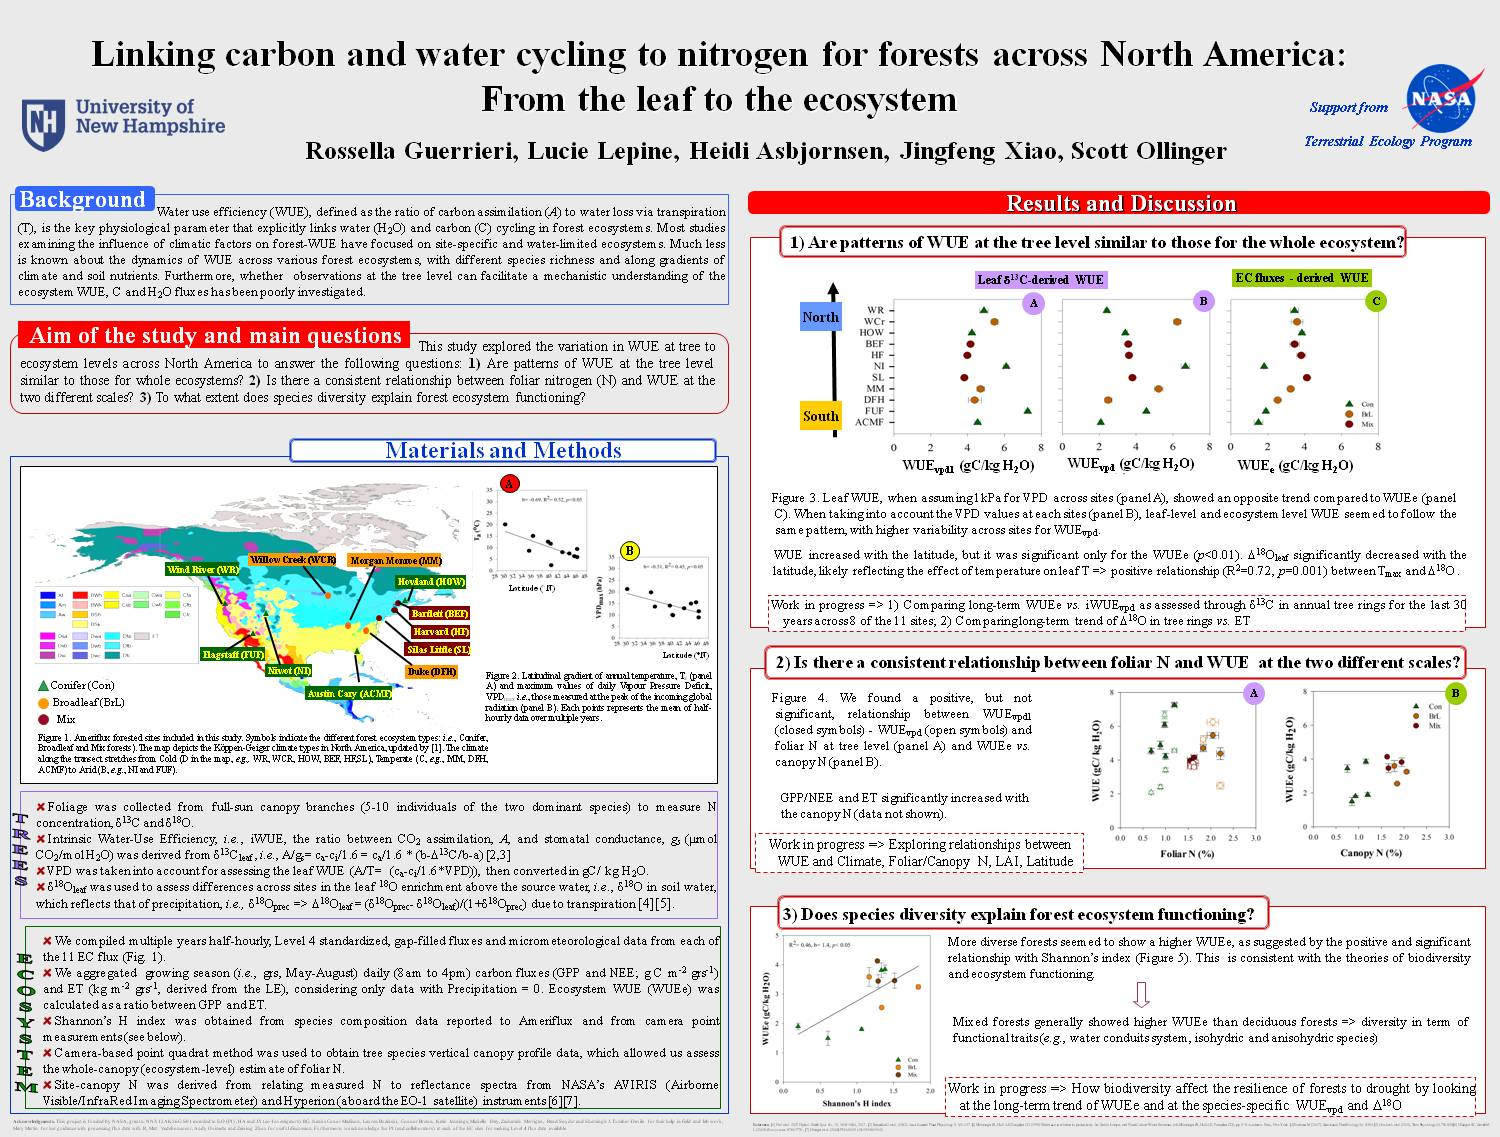 Linking Carbon And Water Cycling To Nitrogen For Forests Across North America: From The Leaf To The Ecosystem by rogue77